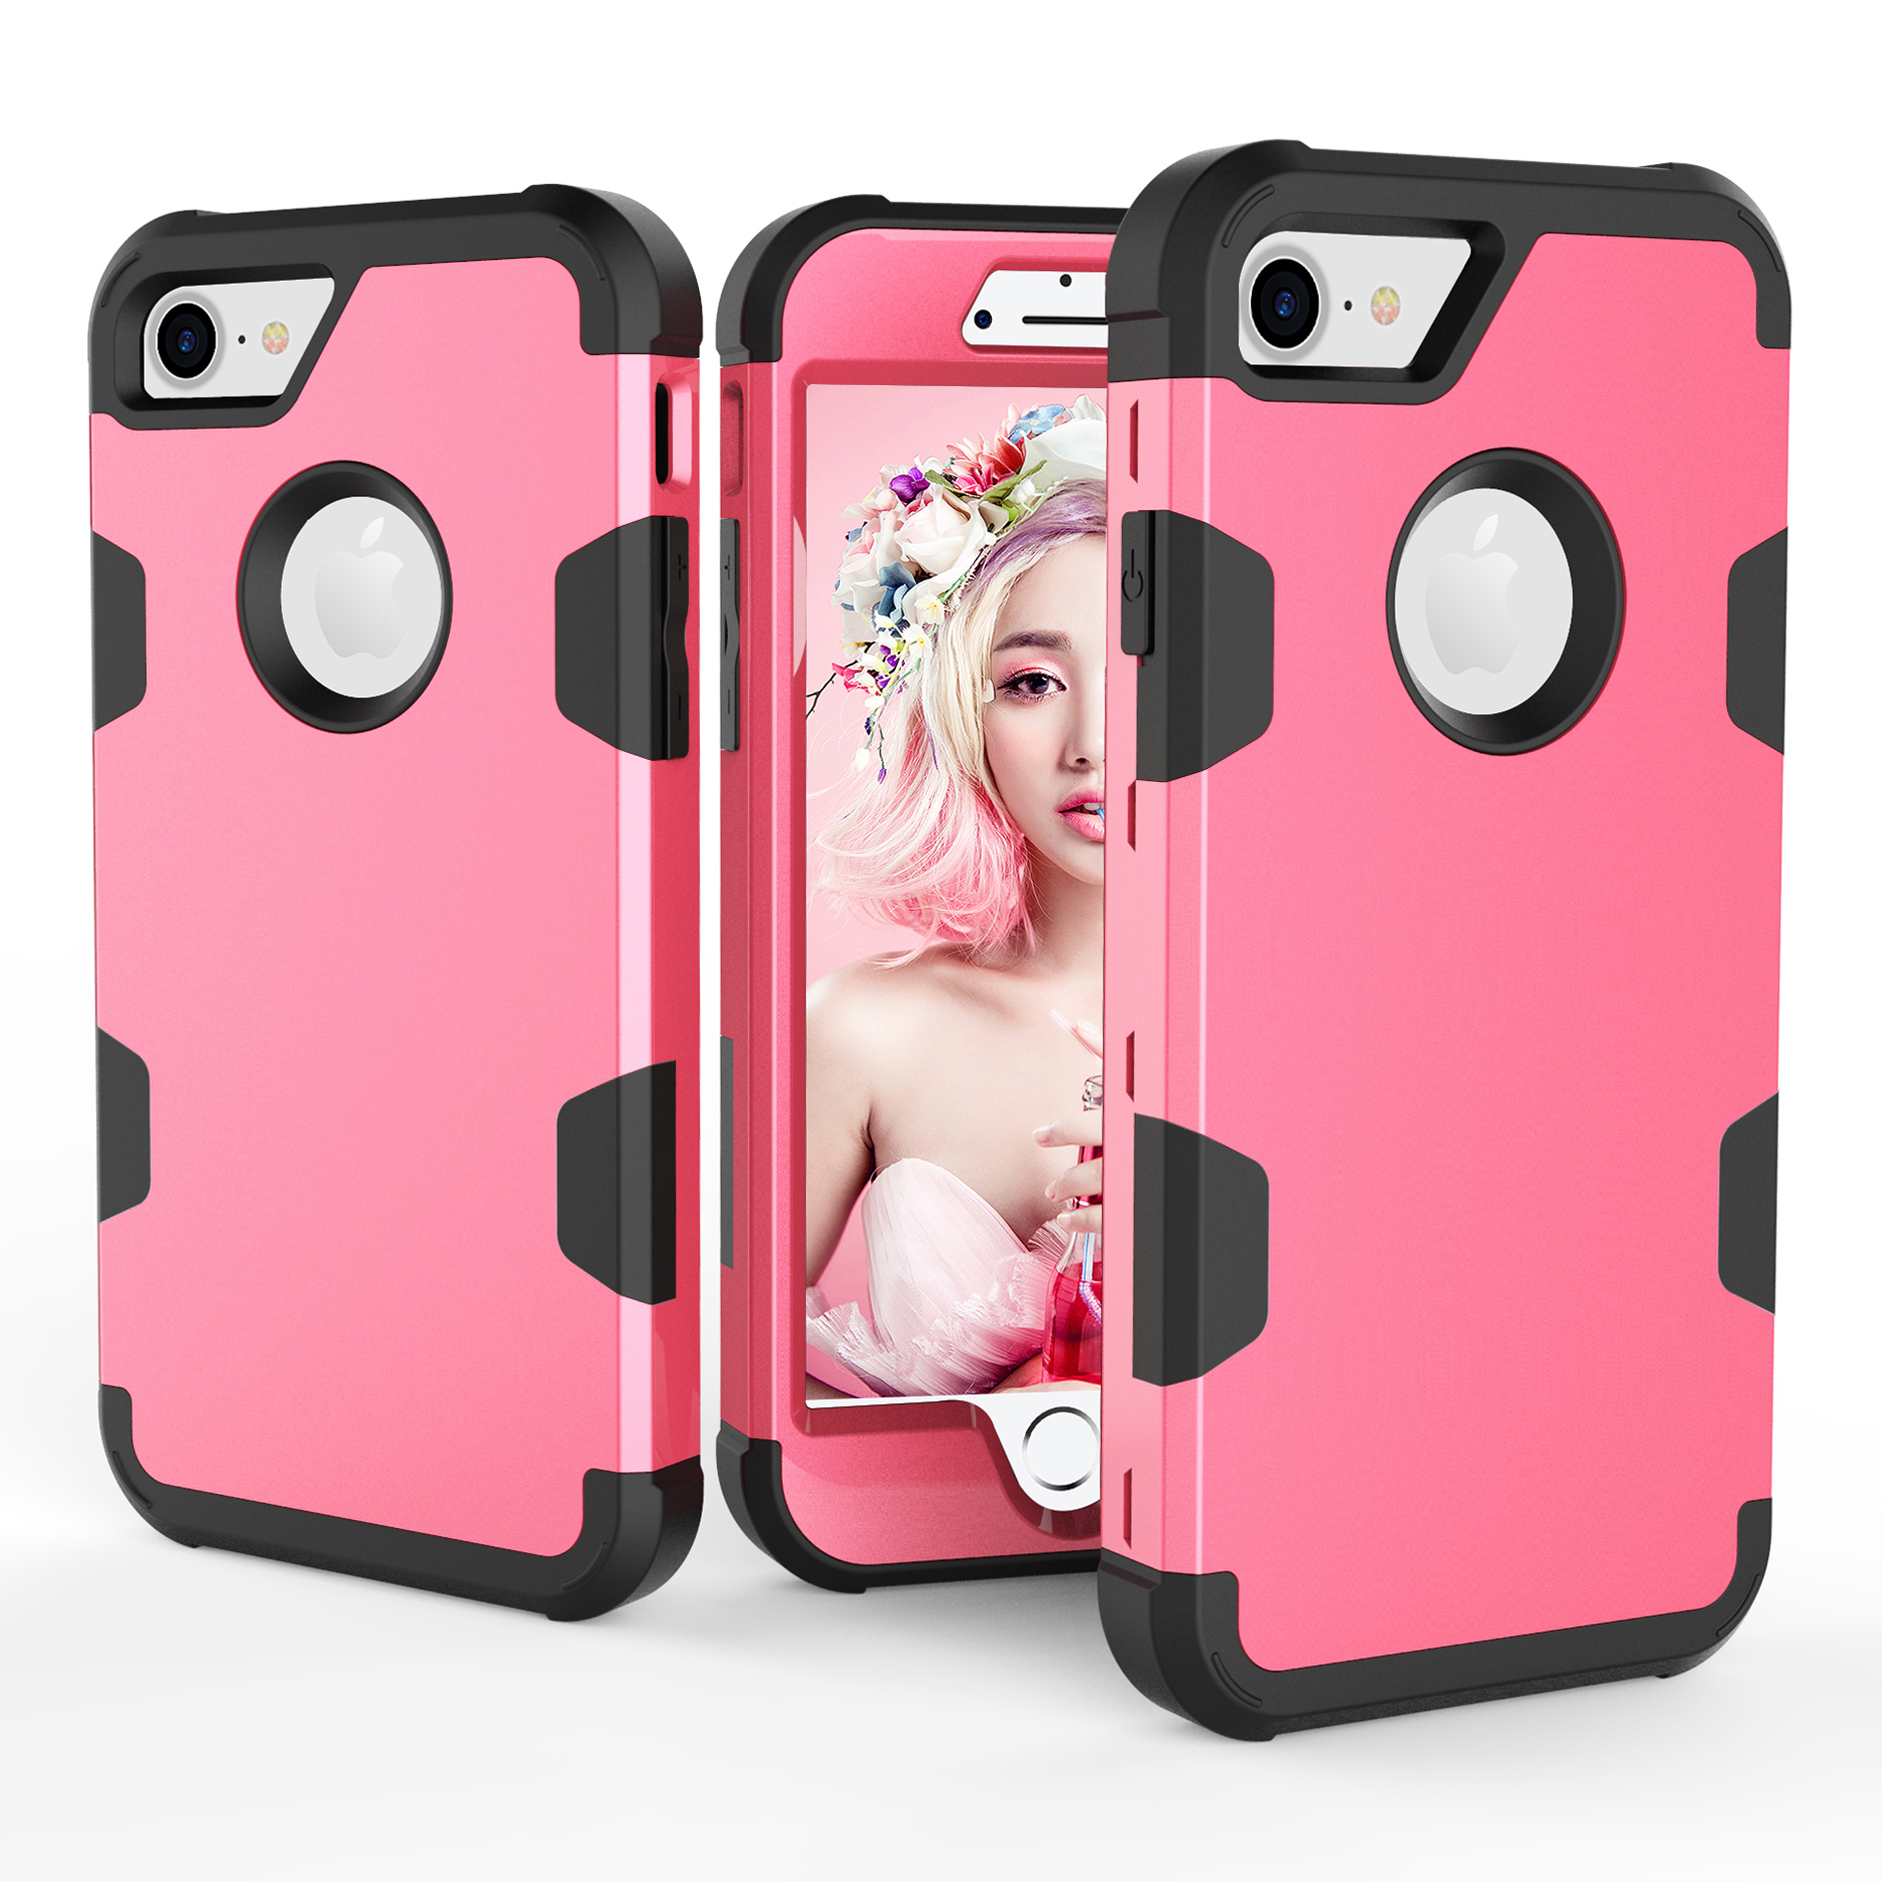 For iPhone 7 PC+ Silicone 2 in 1 Hit Color Tri-proof Shockproof Dustproof Anti-fall Protective Cover Back Case Rose red + black